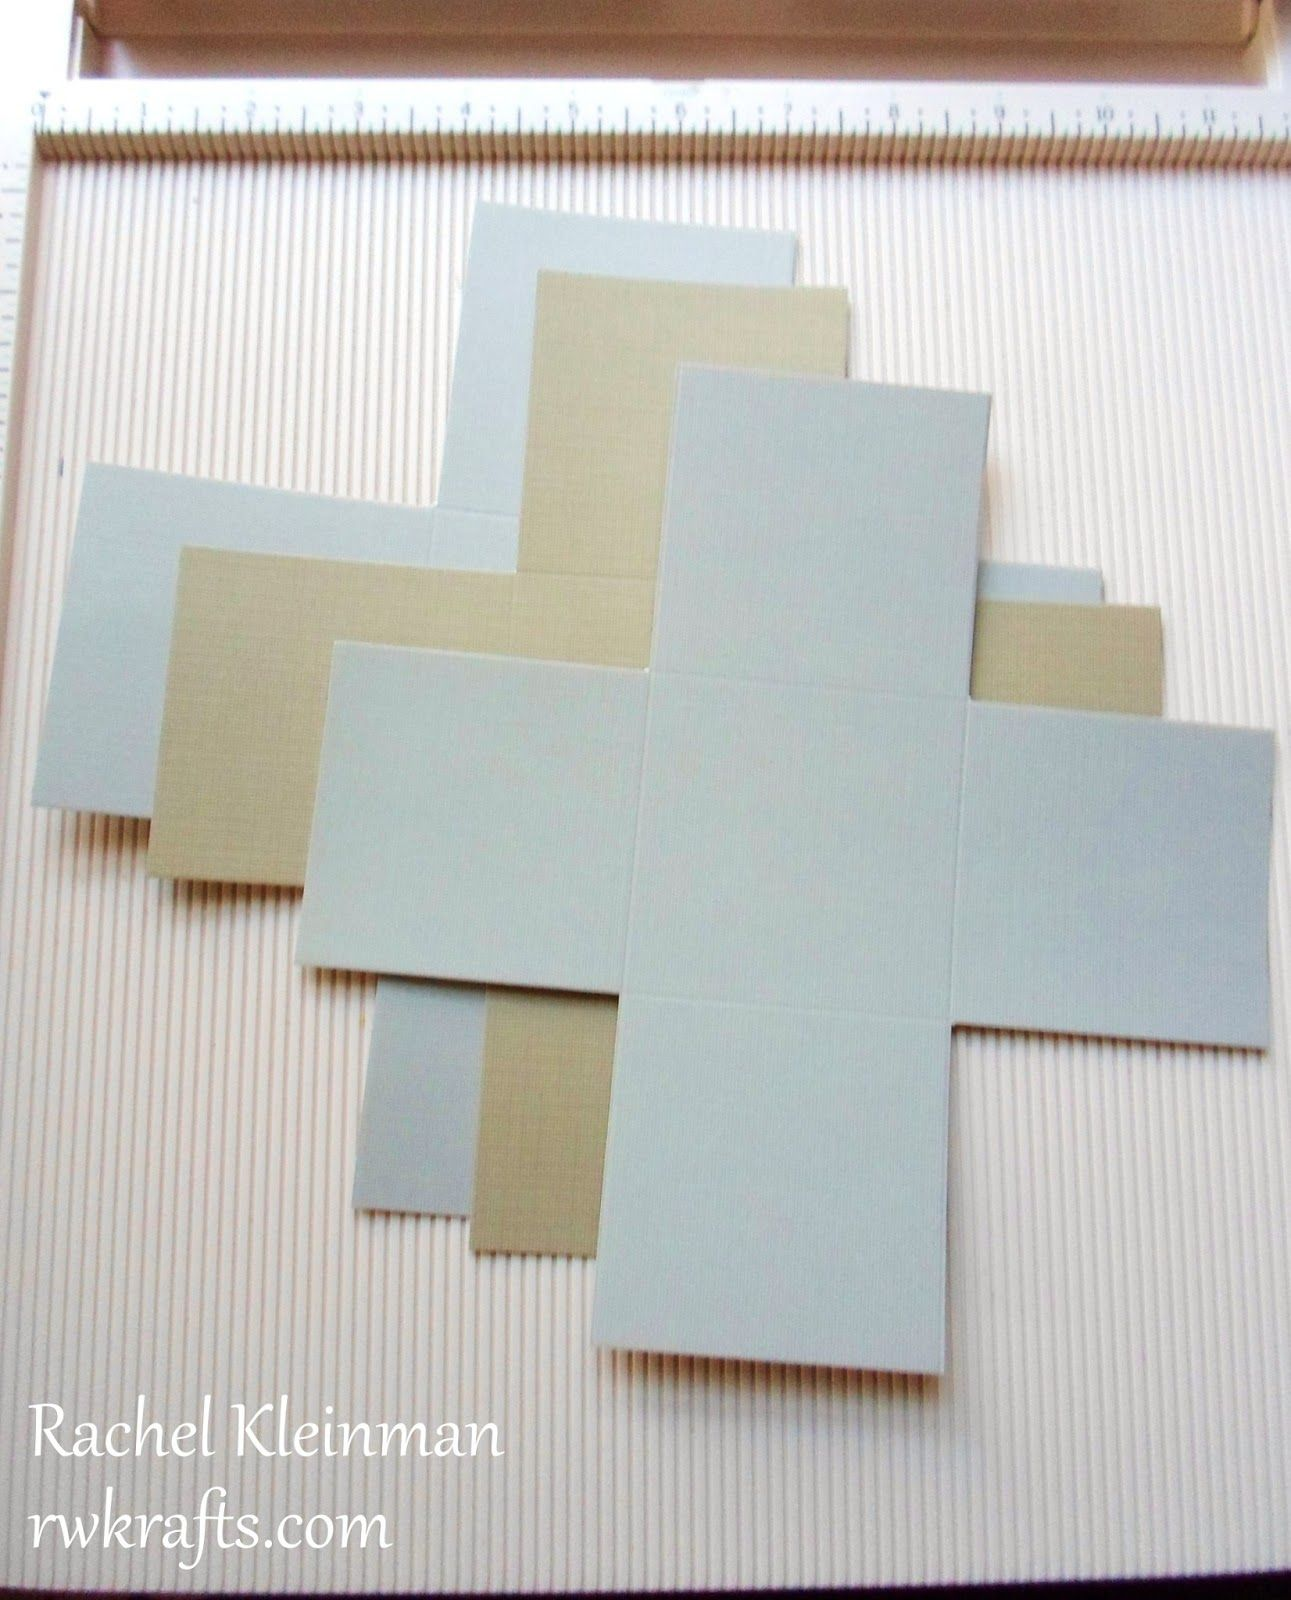 How to make scrapbook box - Rwkrafts How To Tuesday Make An Exploding Scrapbook Box